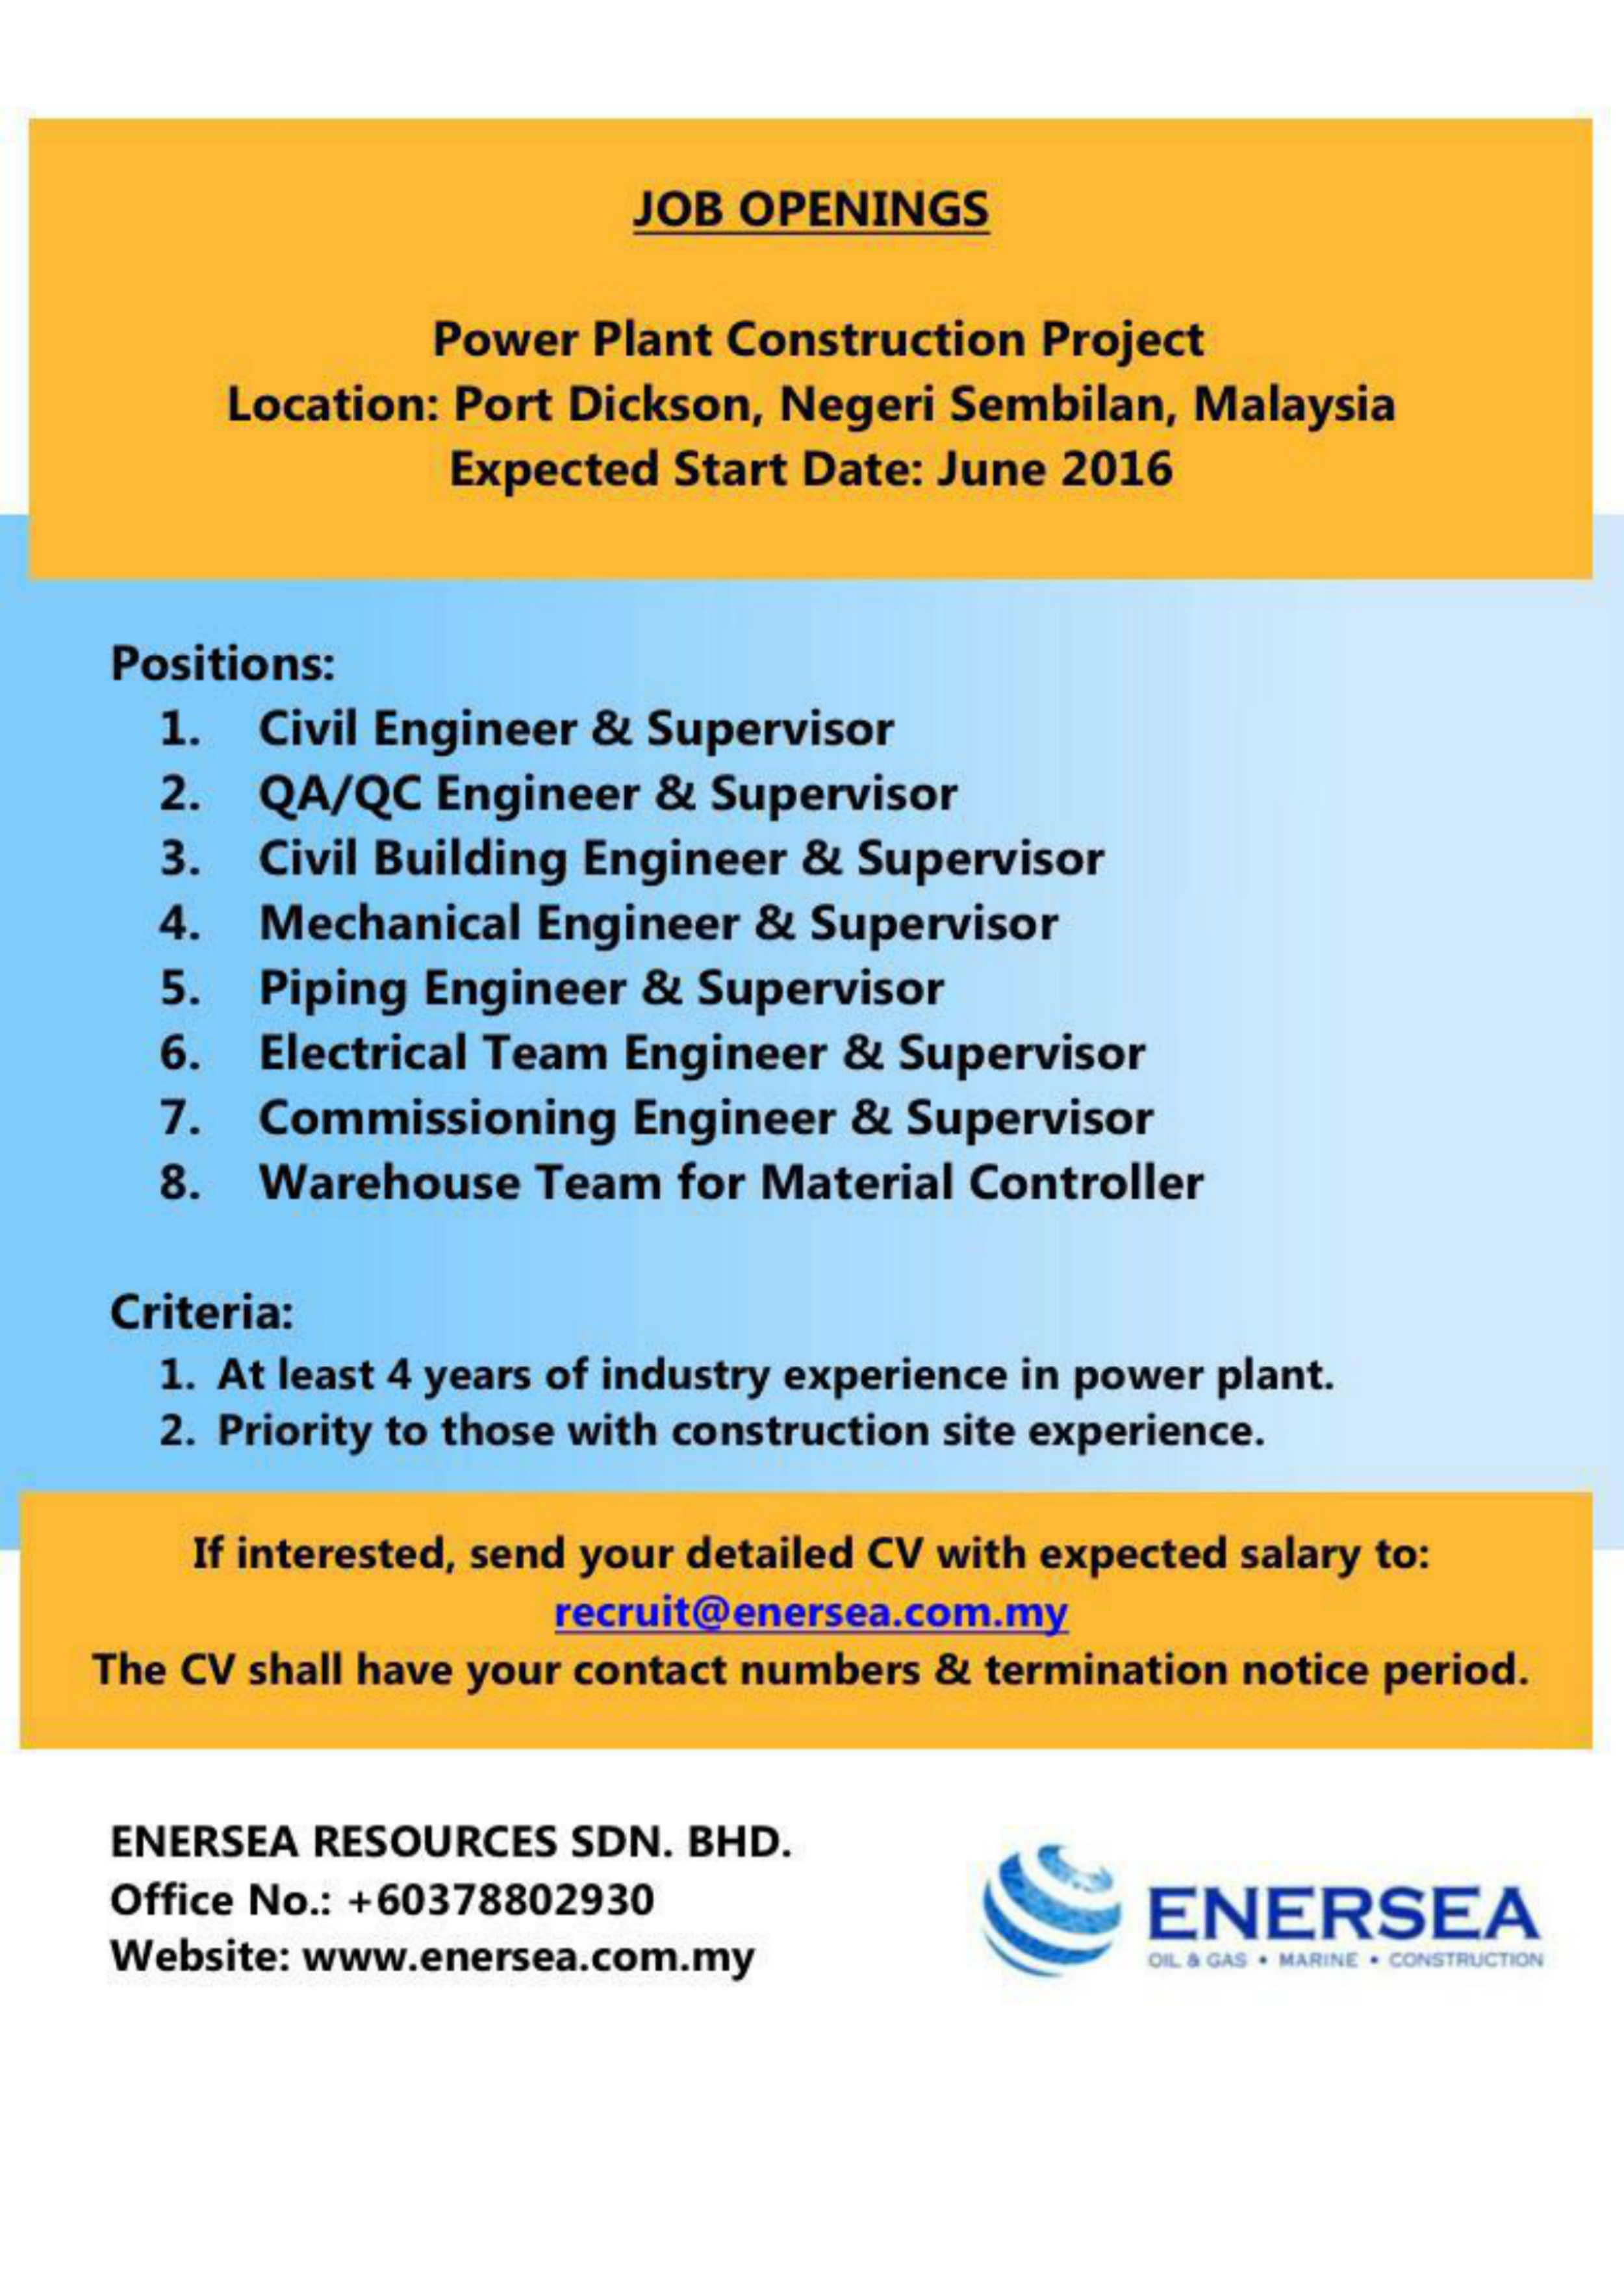 Career – Enersea Resources